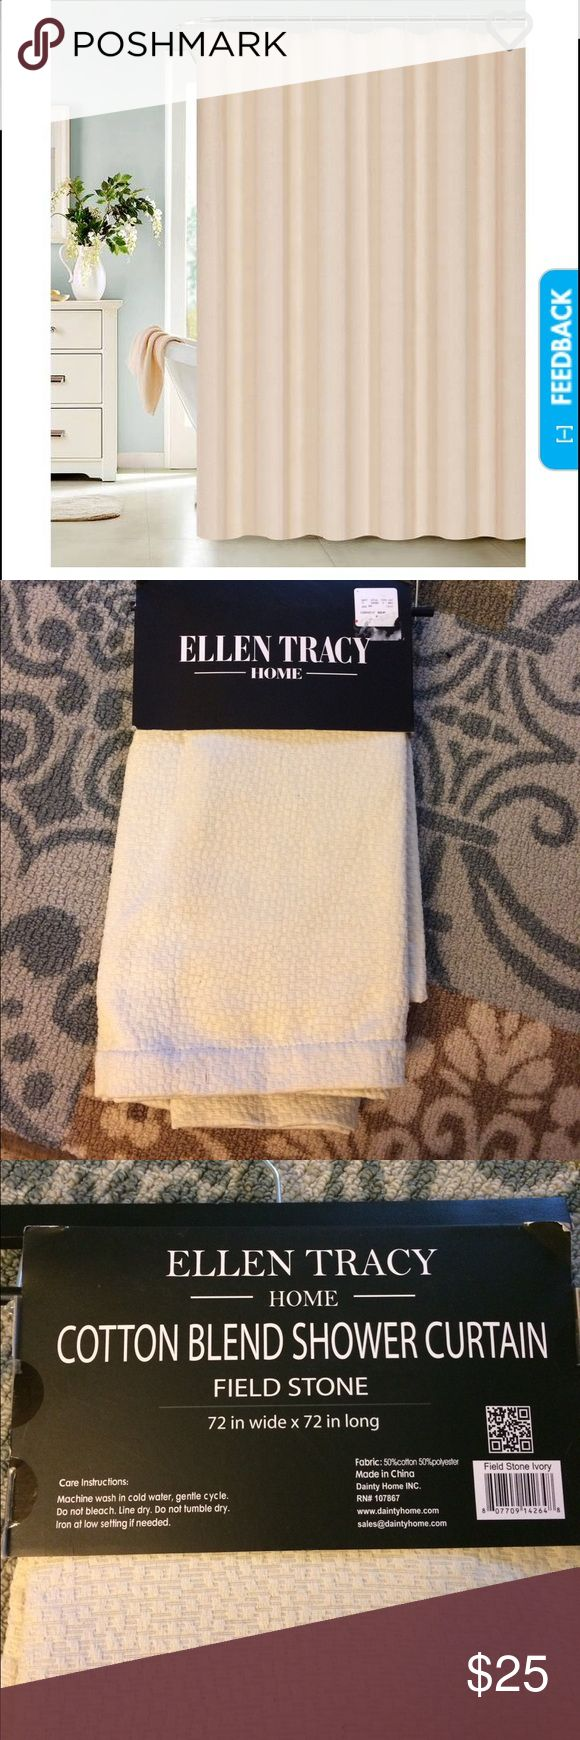 NWT Ellen Tracy Home*Shower Curtain New with tags, Ellen Tracy Home* cotton blend shower curtain. *FIELD STONE* nice ivory color. 72X72in. Feel free to ask questions! I ship same day!! Ellen Tracy Accessories